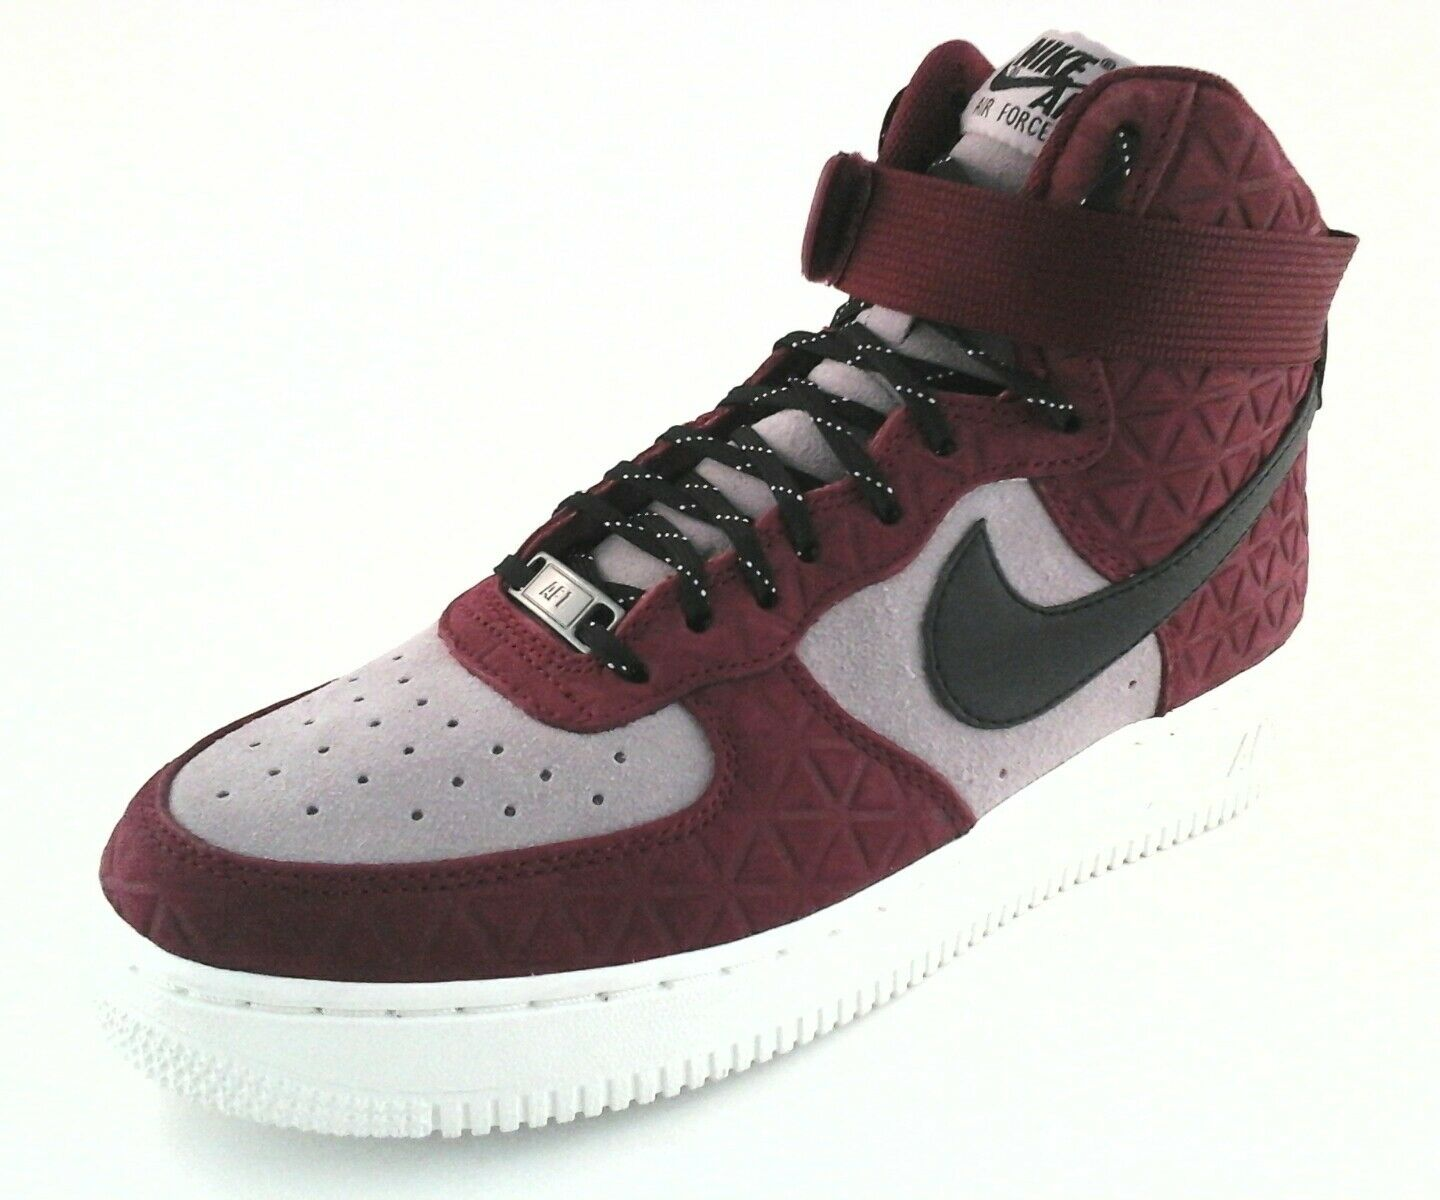 NIKE AIR FORCE 1 Sneakers High Top Shoes Maroon/Black/Plum Women's US 8.5  Brand discount